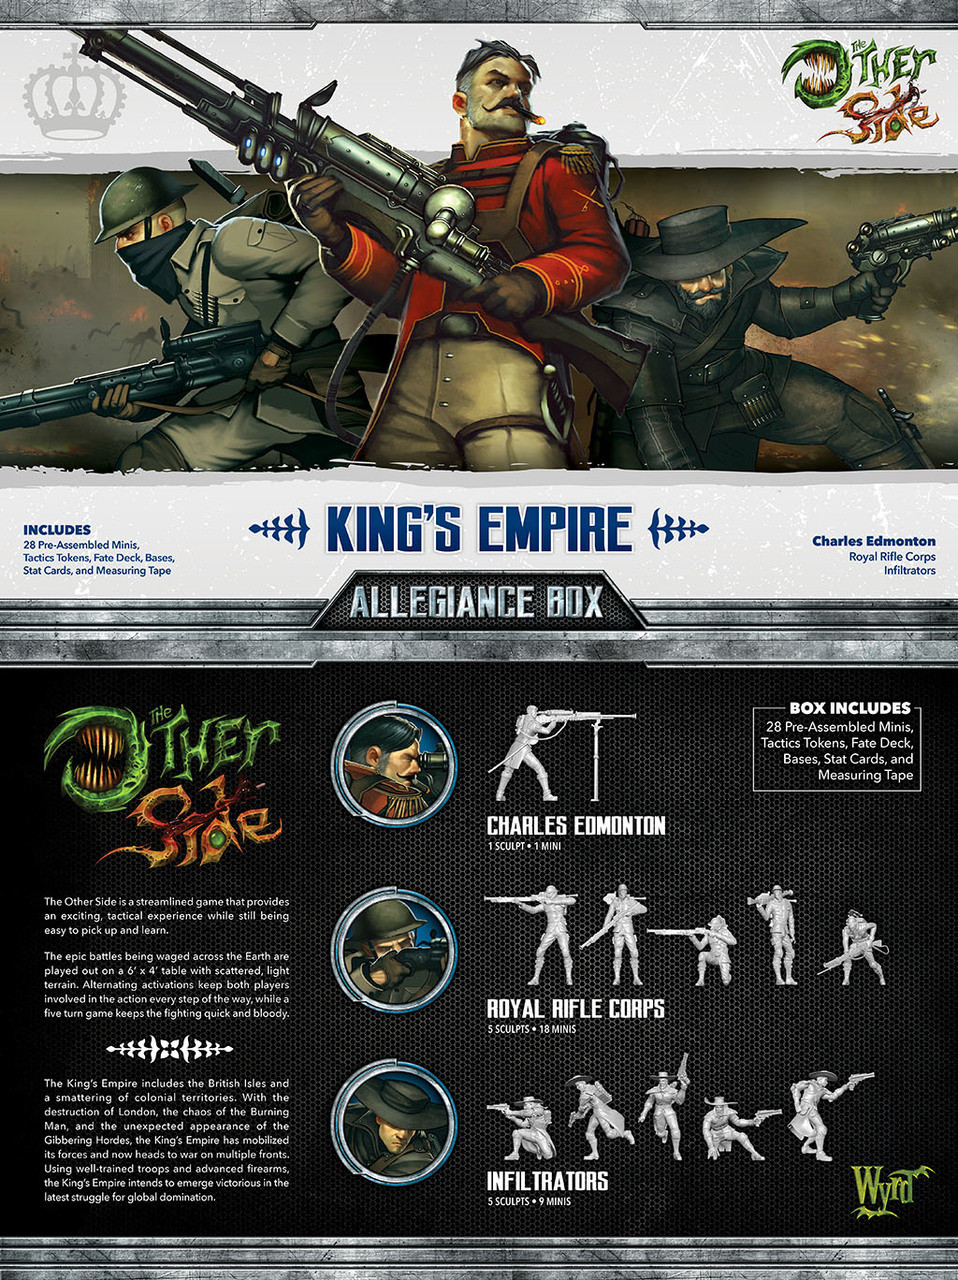 The Other Side - King's Empire Allegiance Box - Charles Edmonton